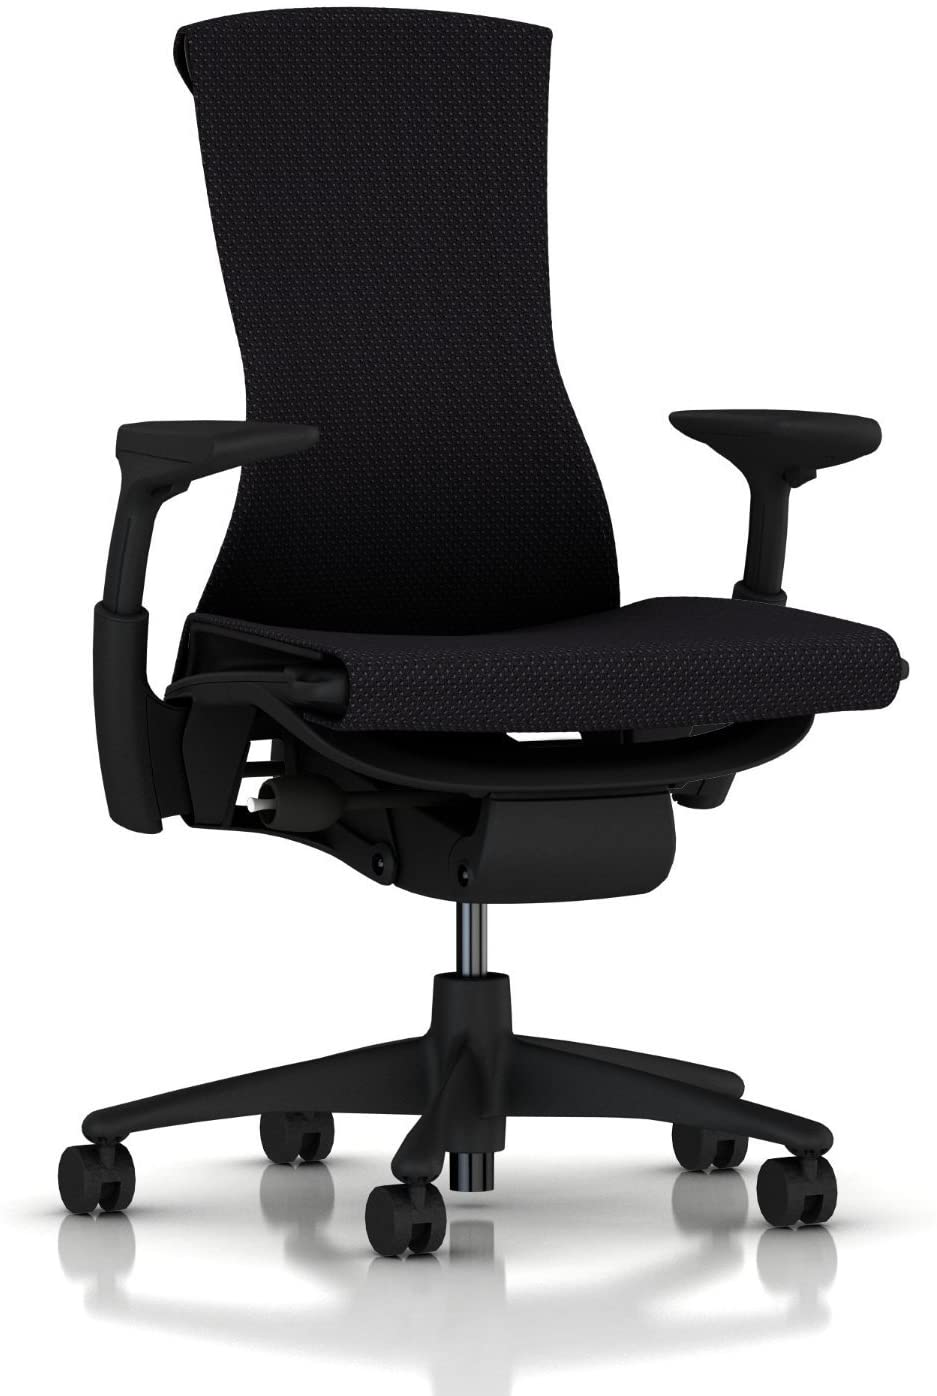 Gaming chair guide & reviews : Expert shares steps to buy a gaming chair 3